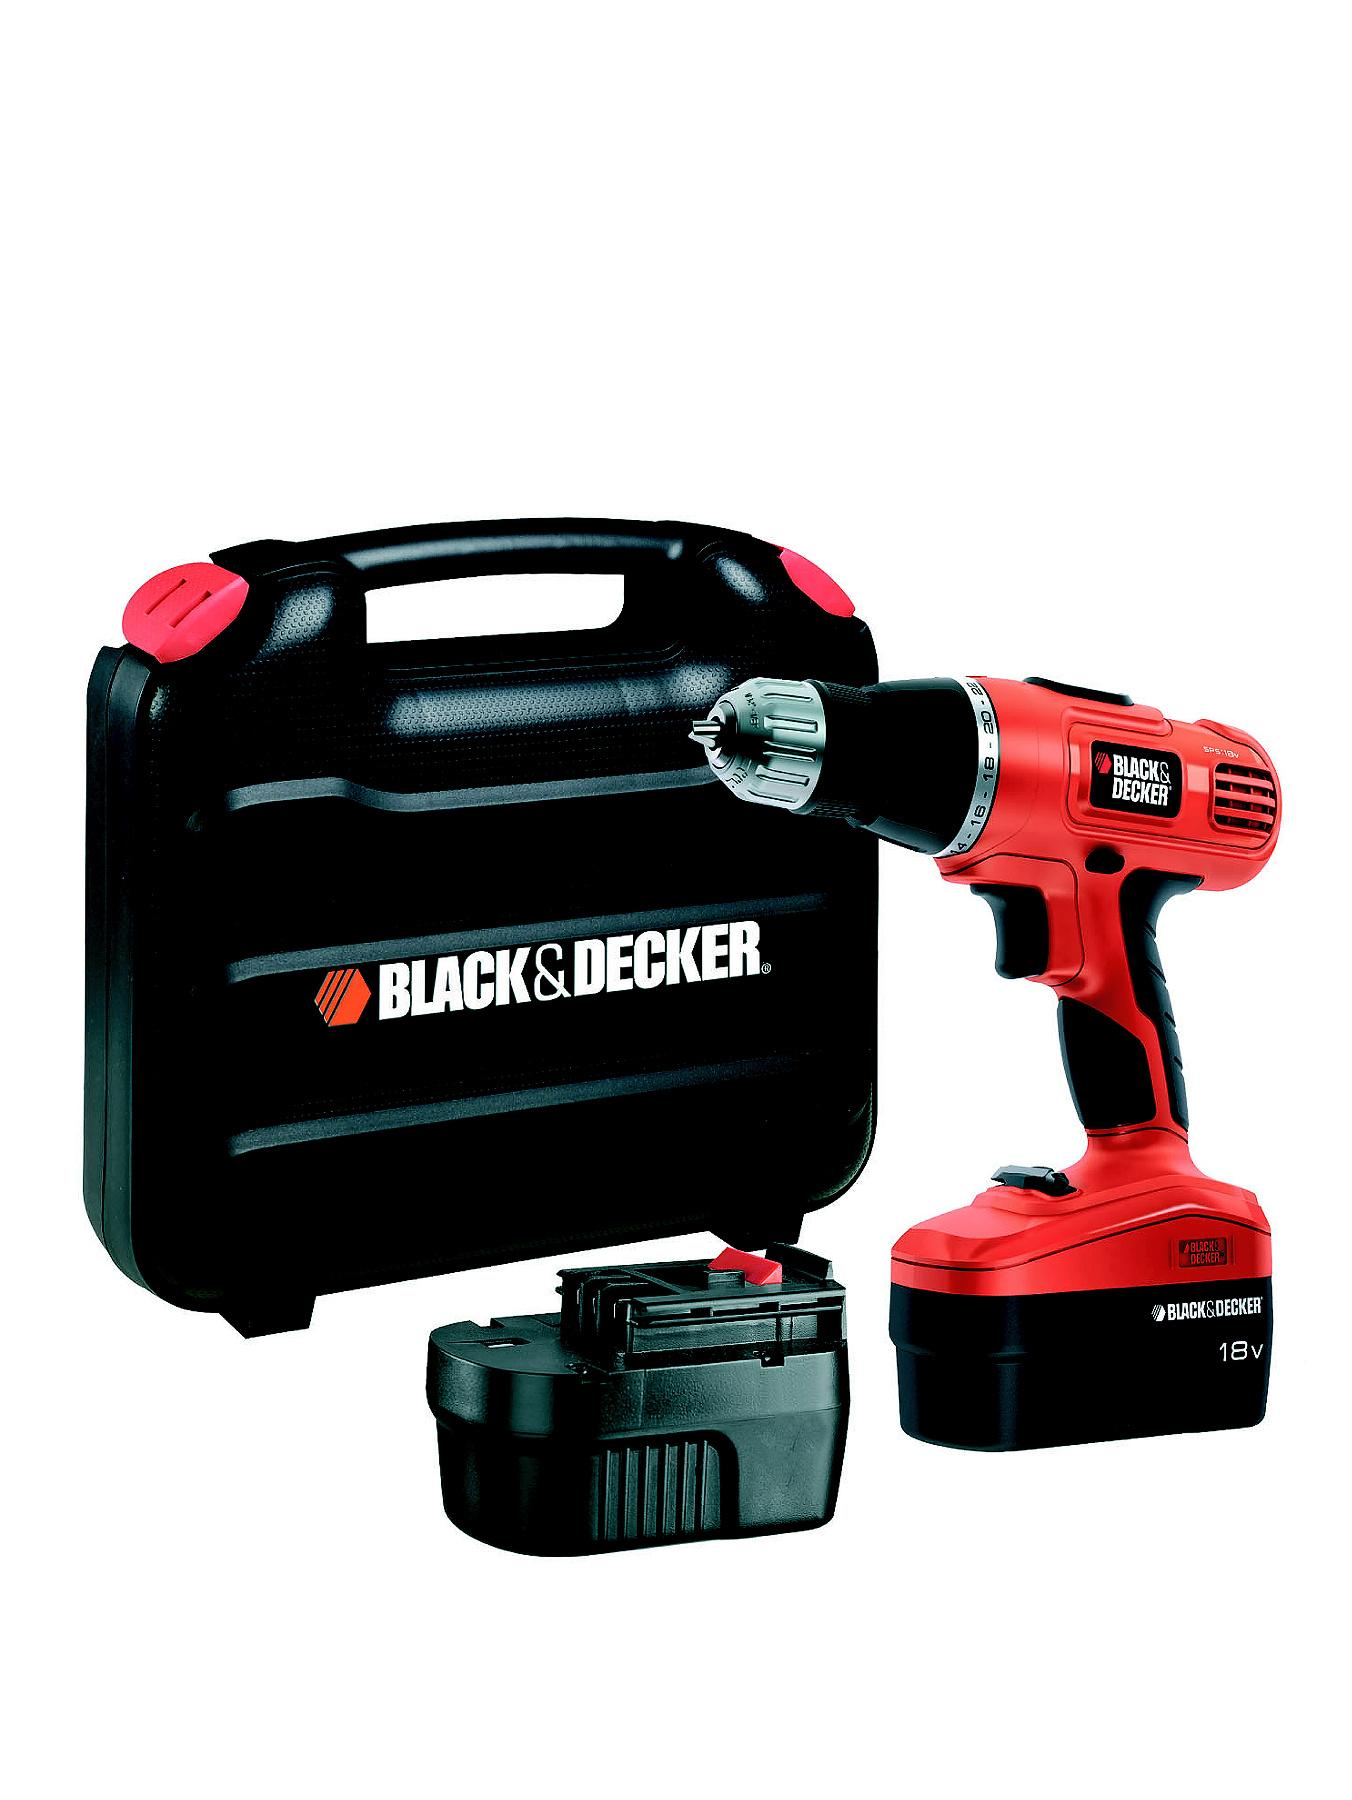 Black & Decker EPC188BK-GB 18V Combi Drill/Driver With 2 Batteries